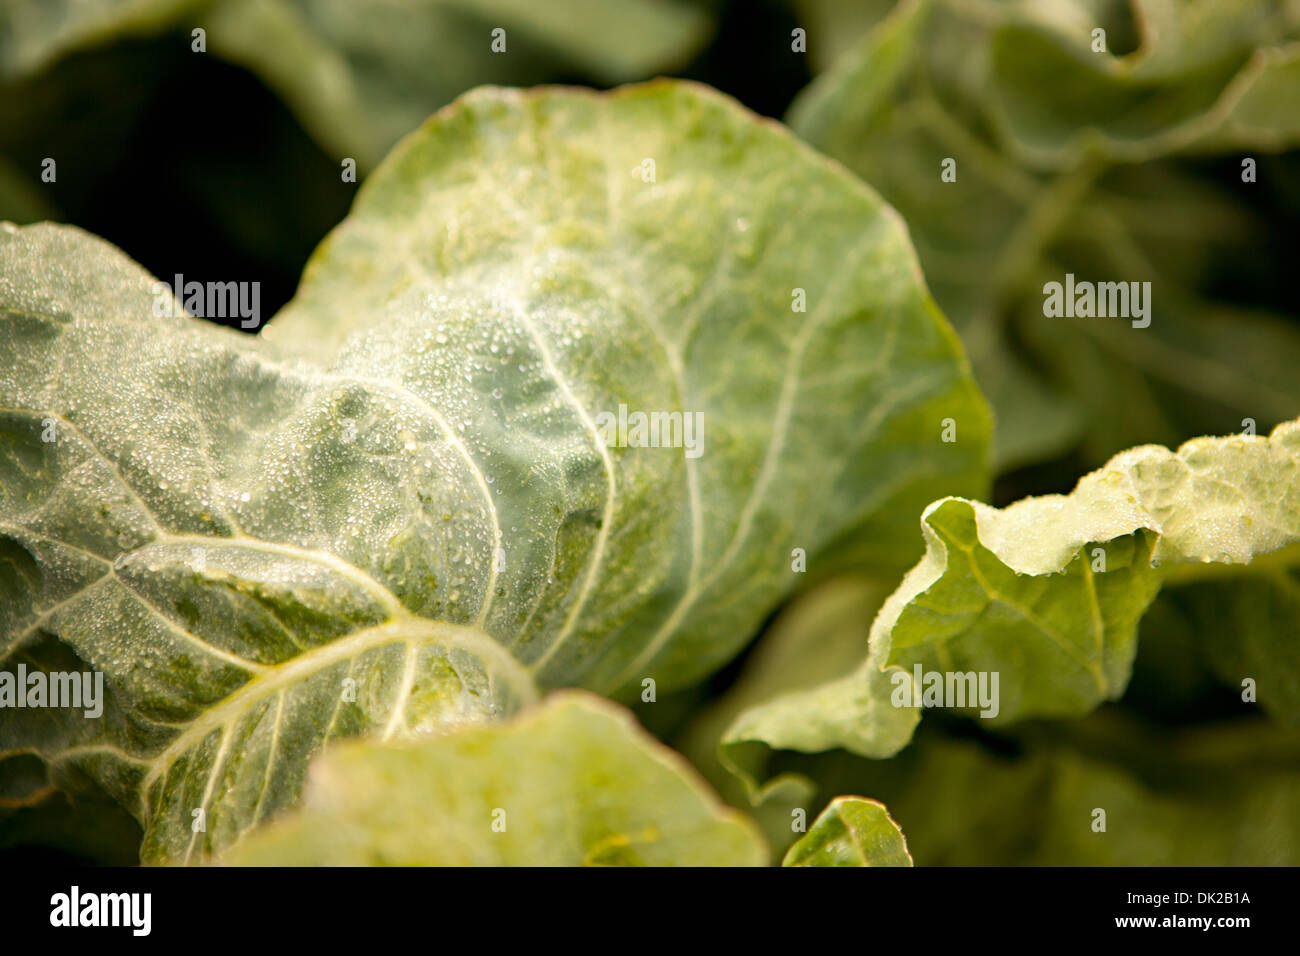 Full frame close up detail of green leafy vegetable growing in garden - Stock Image